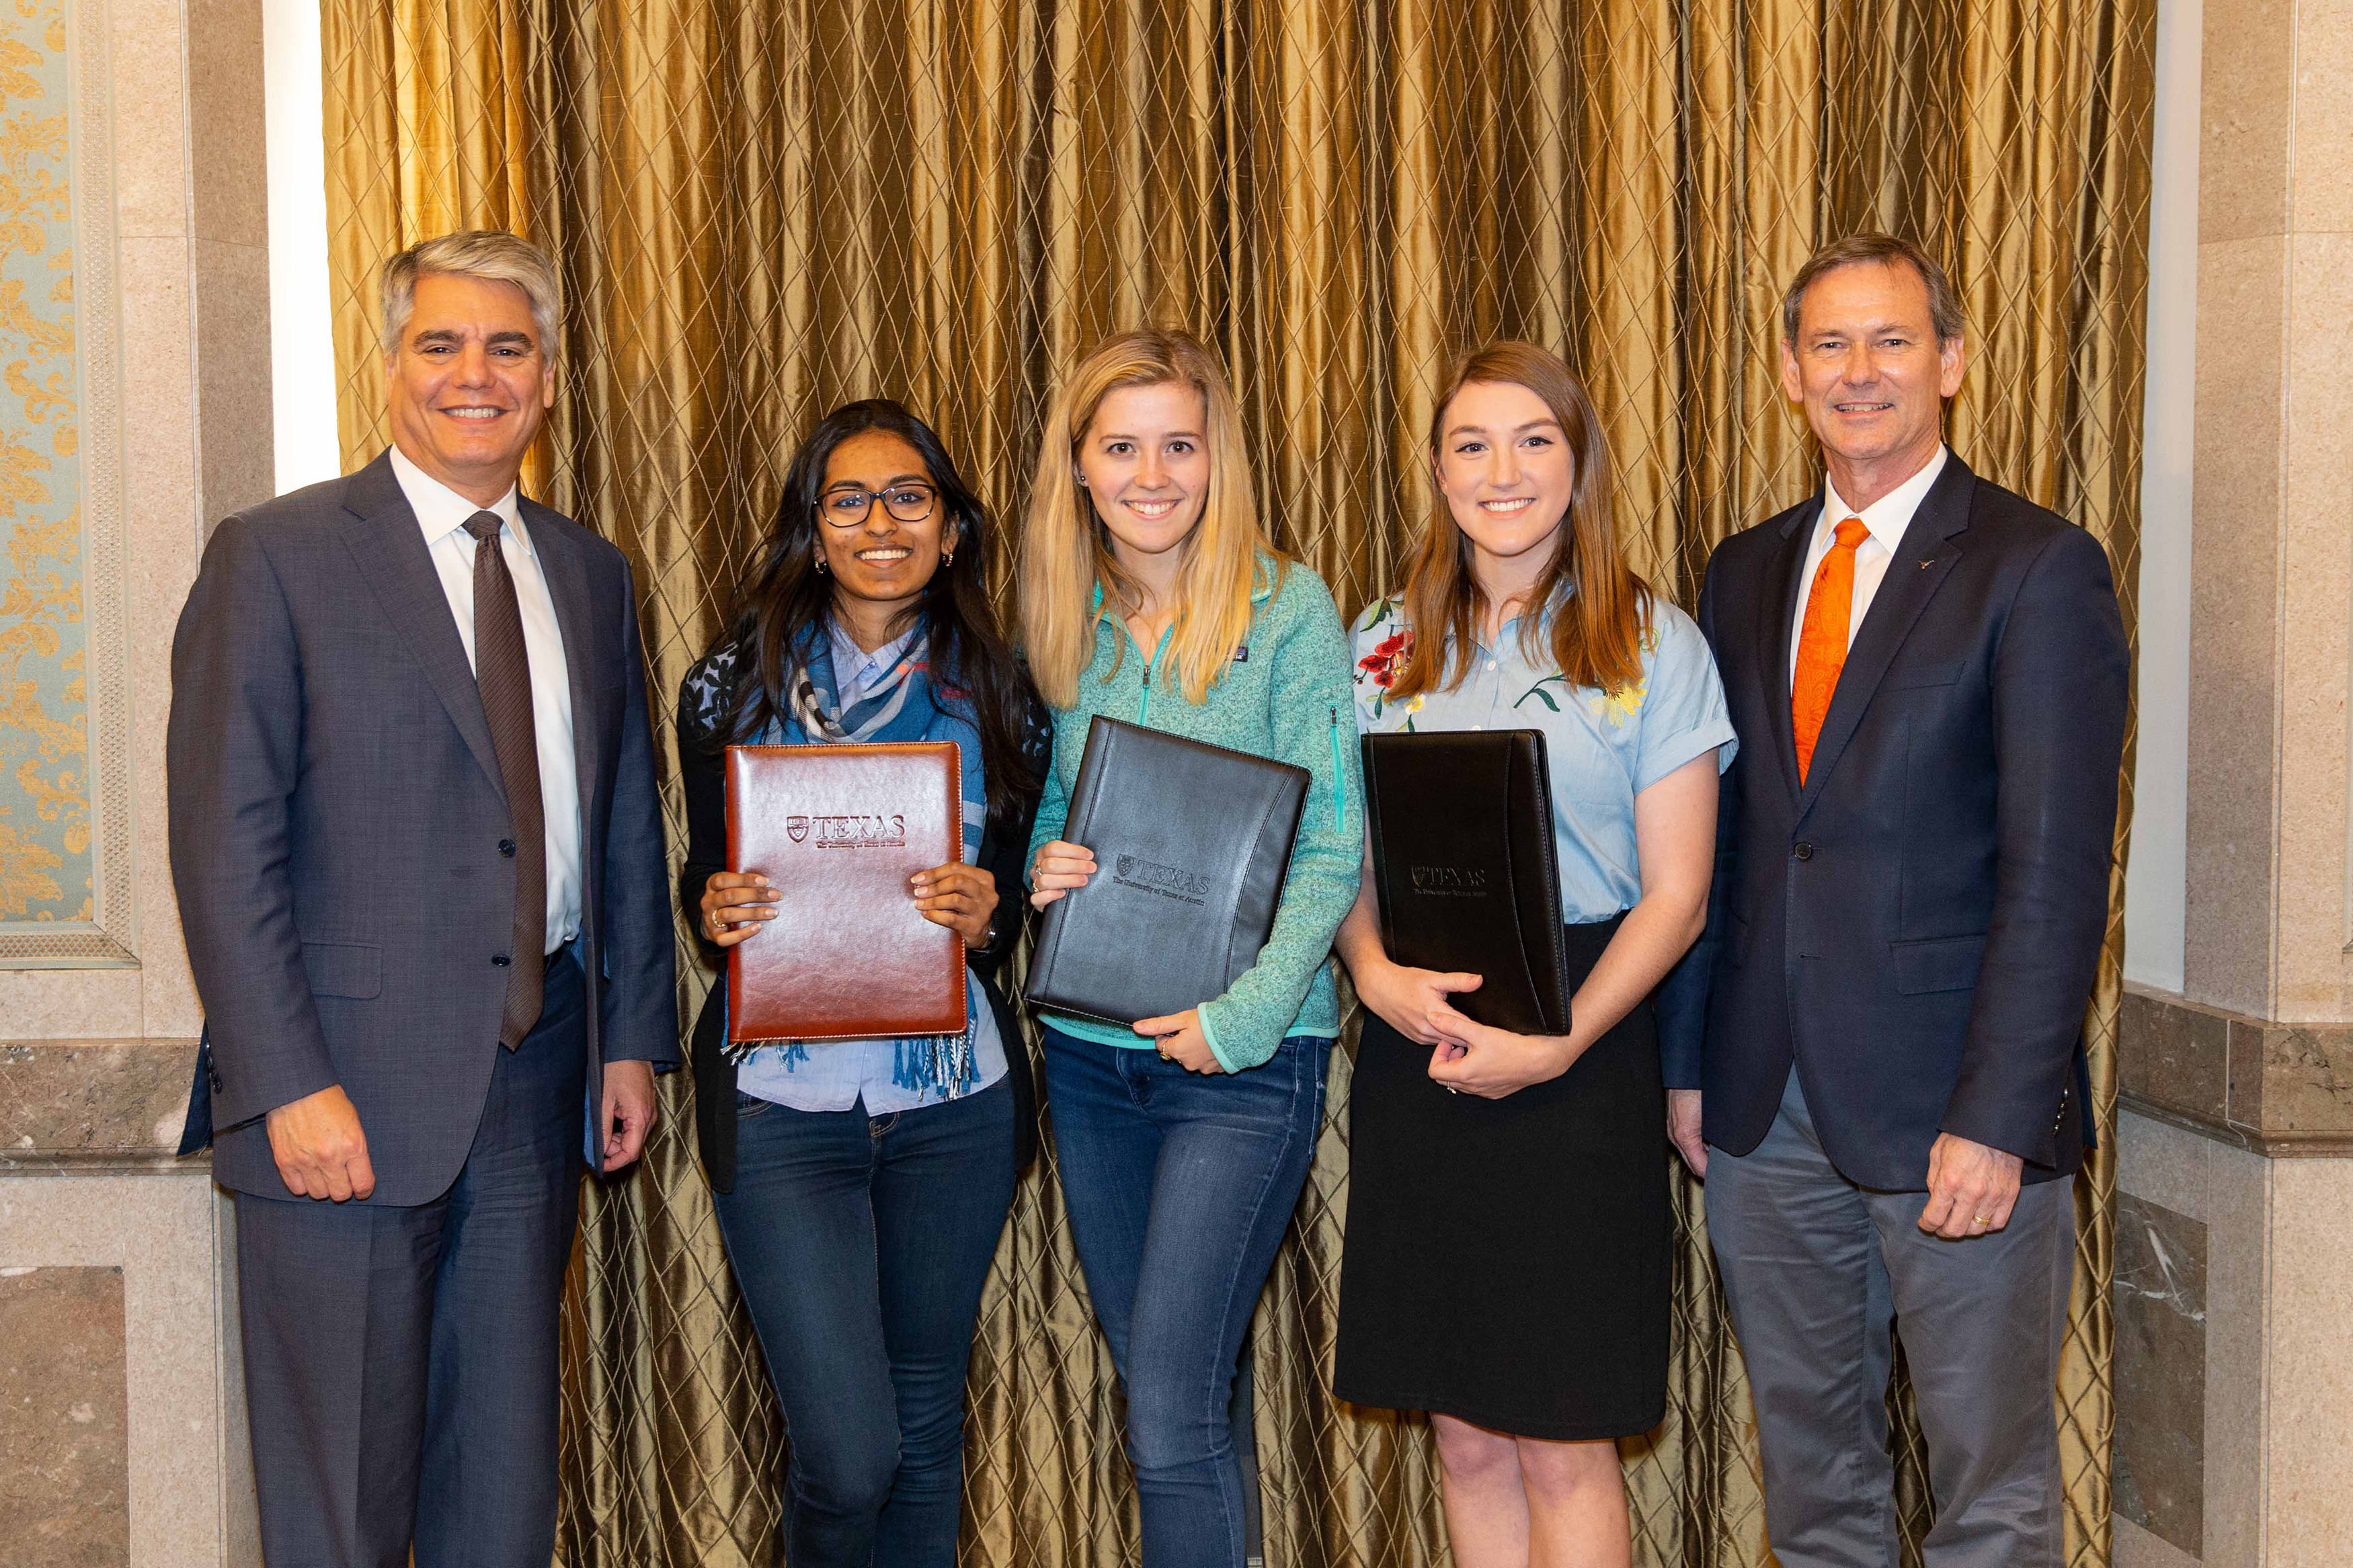 Winners of the 2018 Texas Student Research Showdown